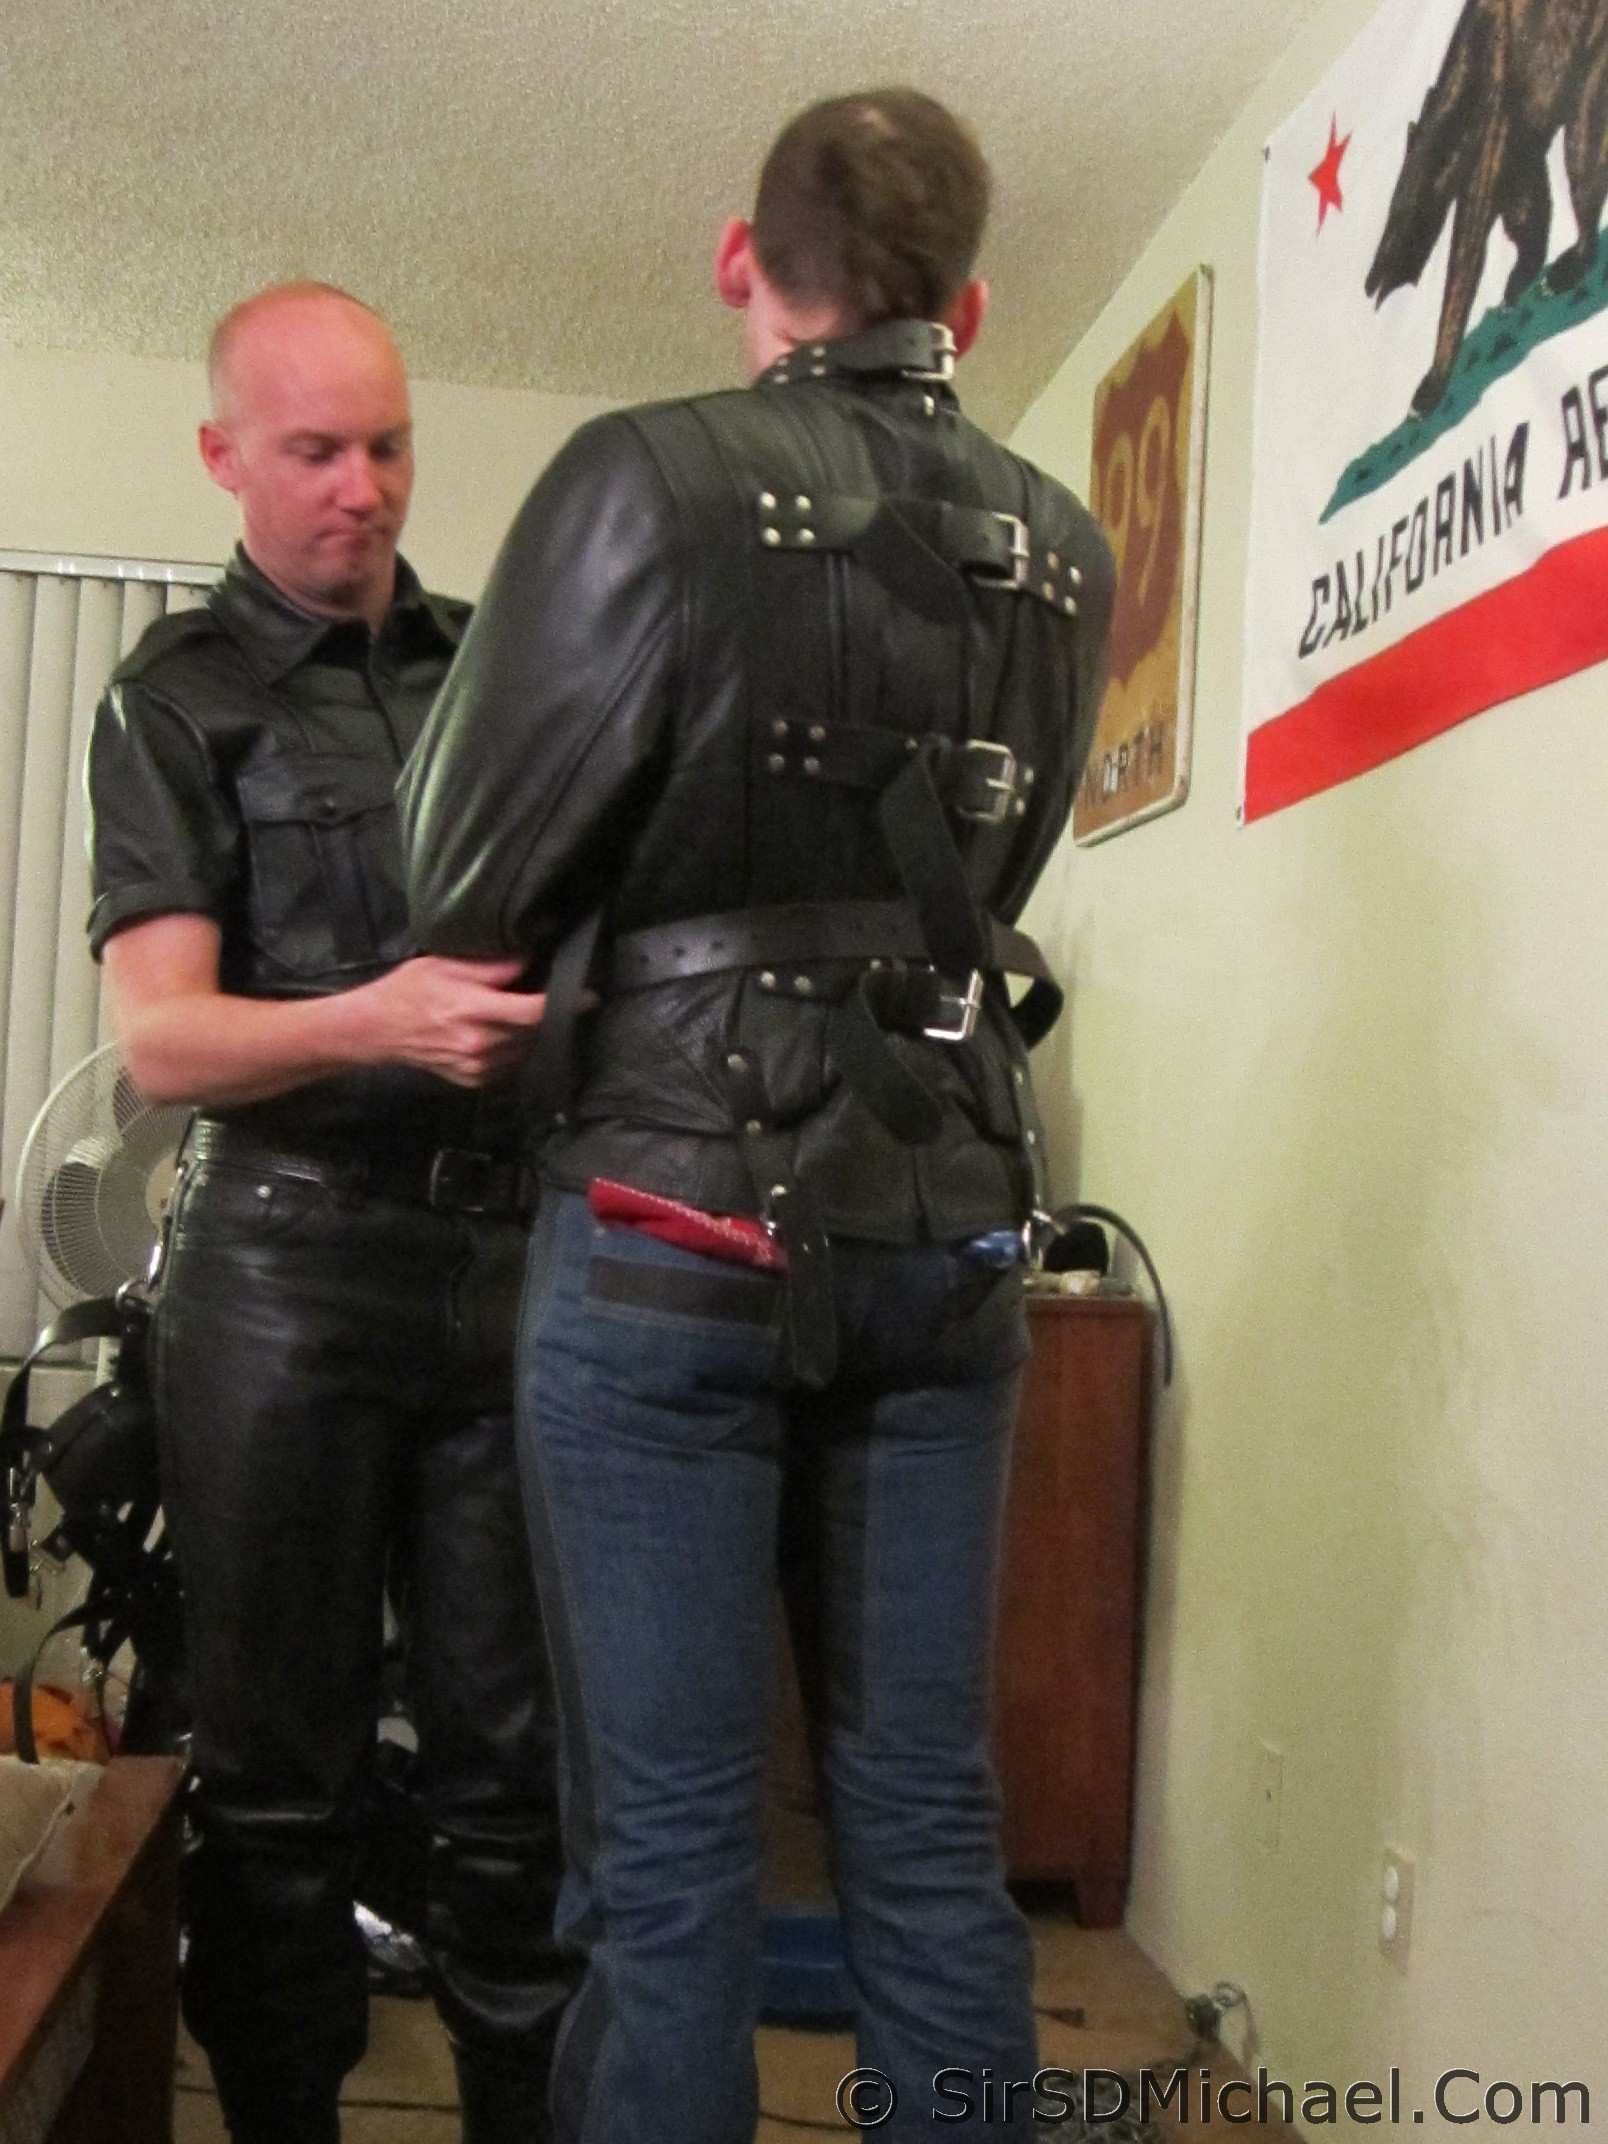 Strapping a boy into a straitjacket for a night out.